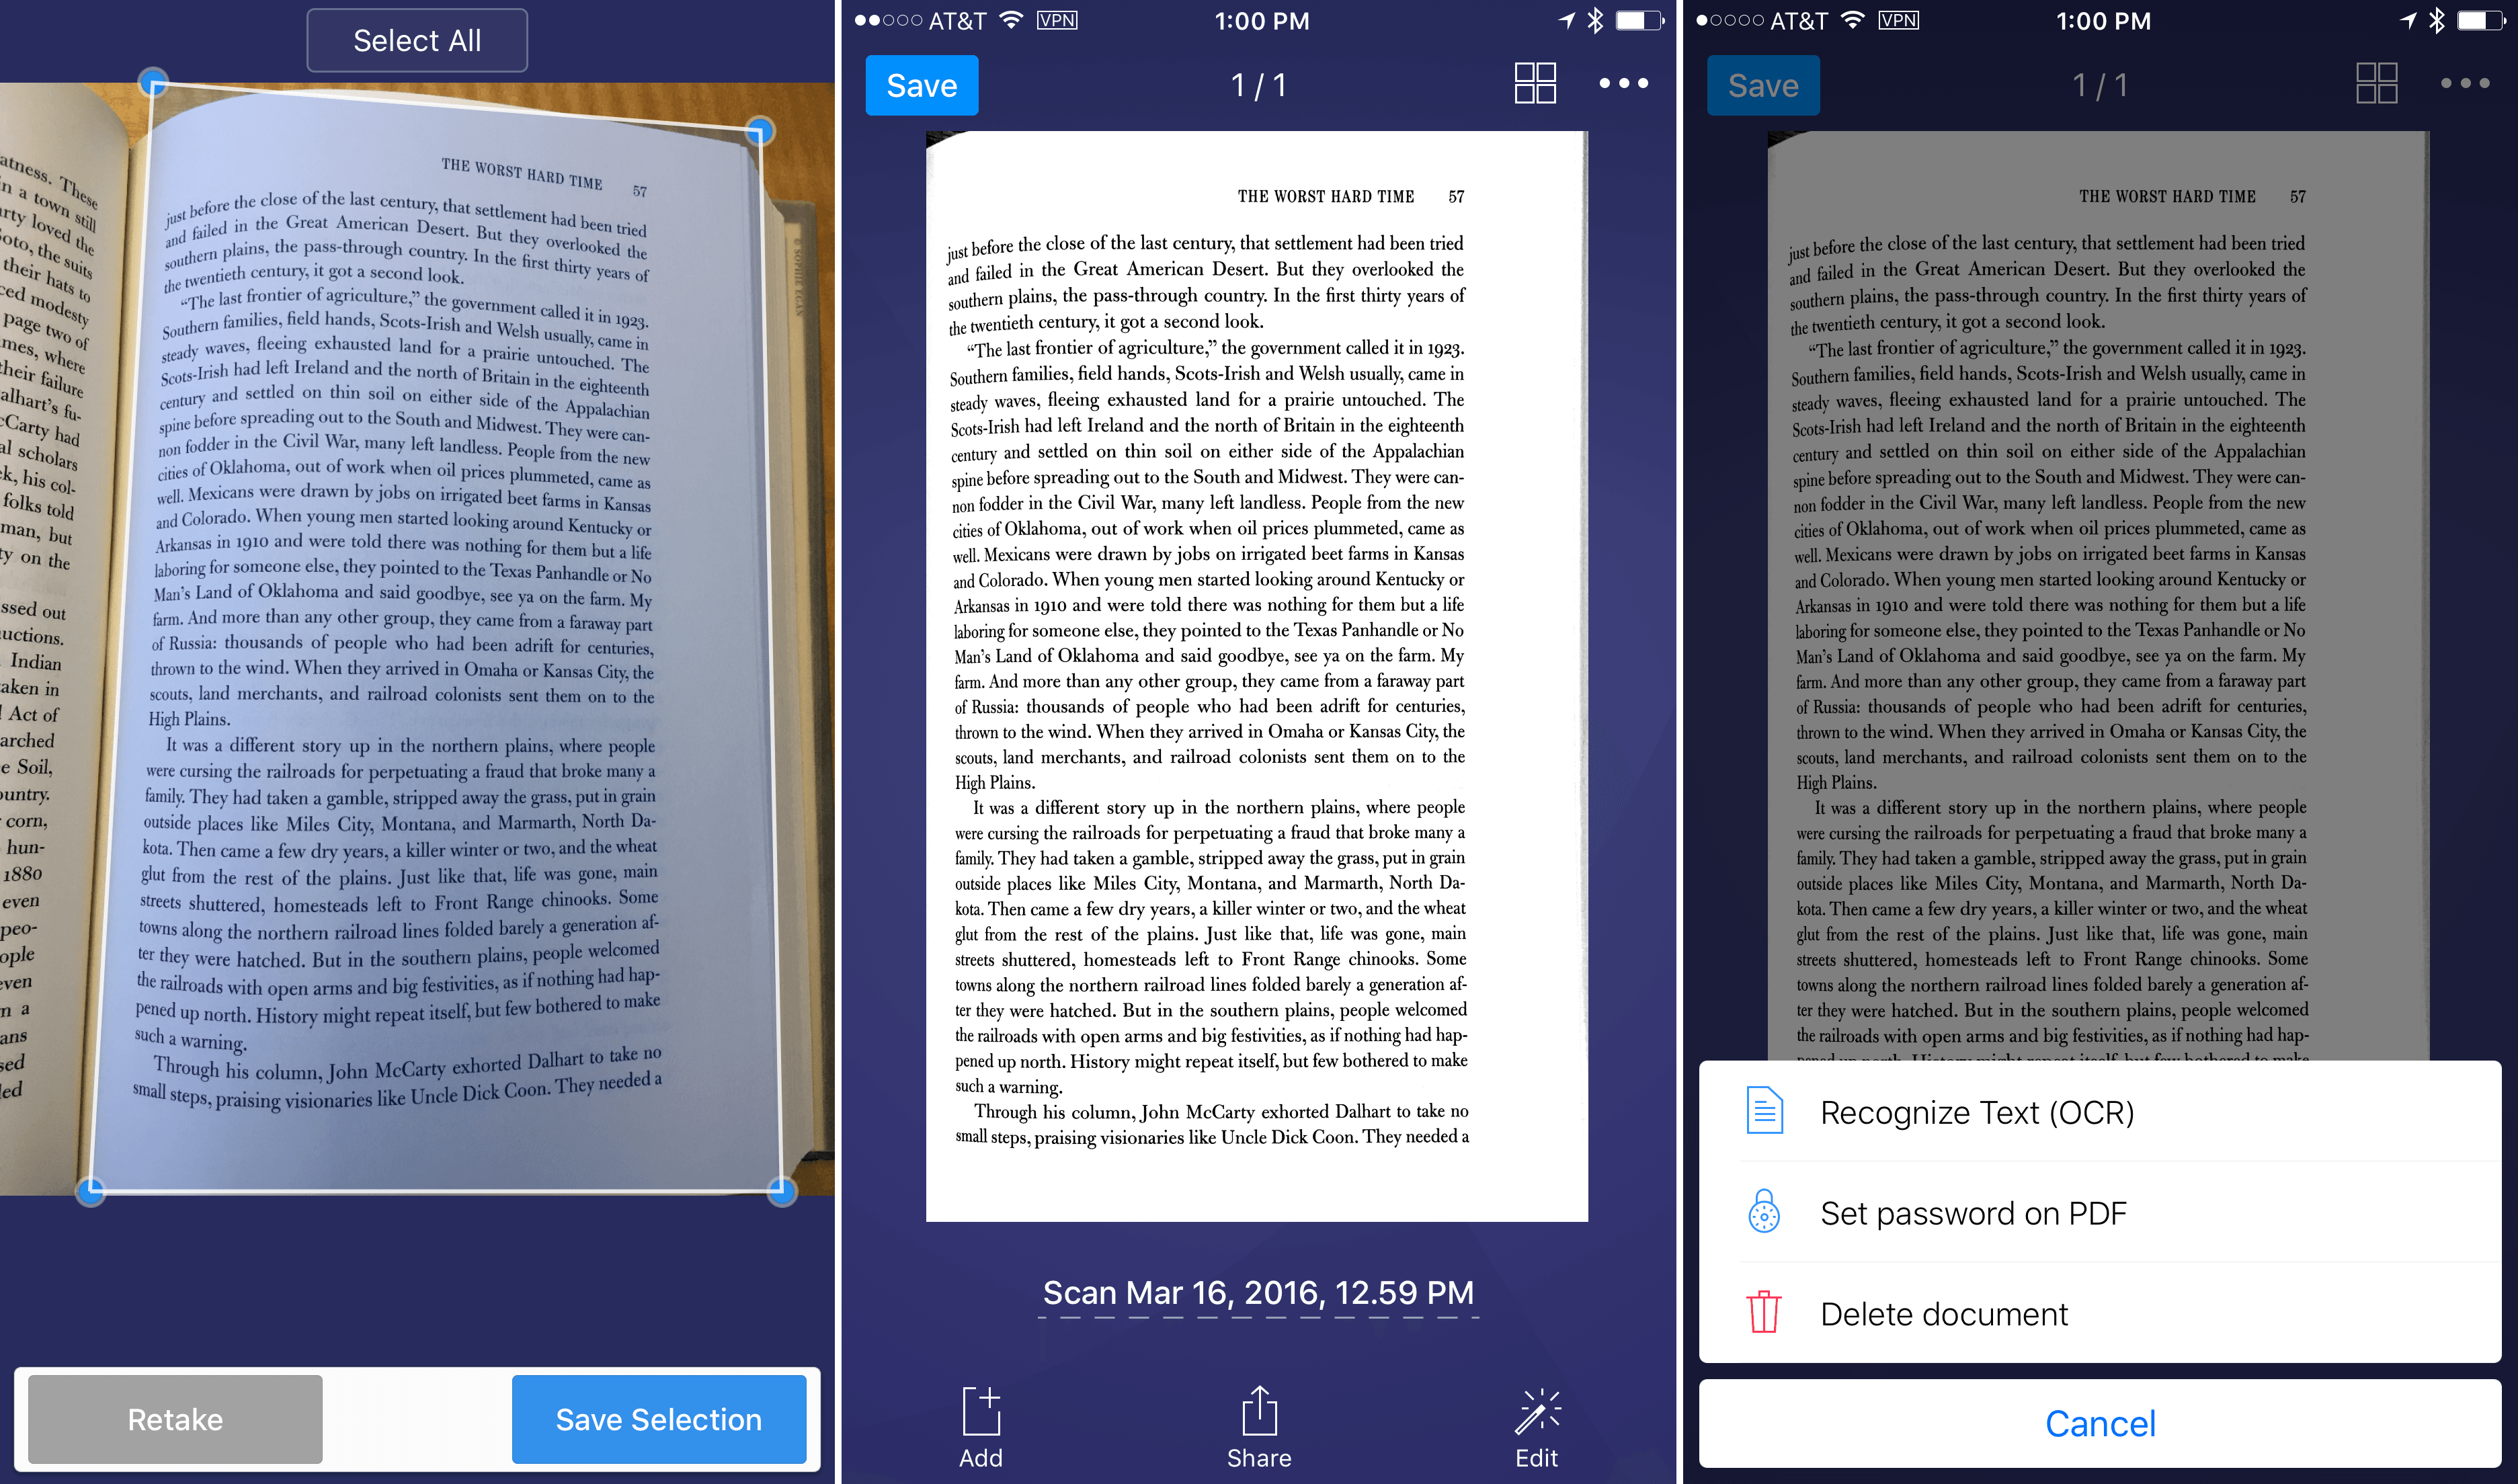 Scanner Pro 7 corrects distortion in images from things like books.